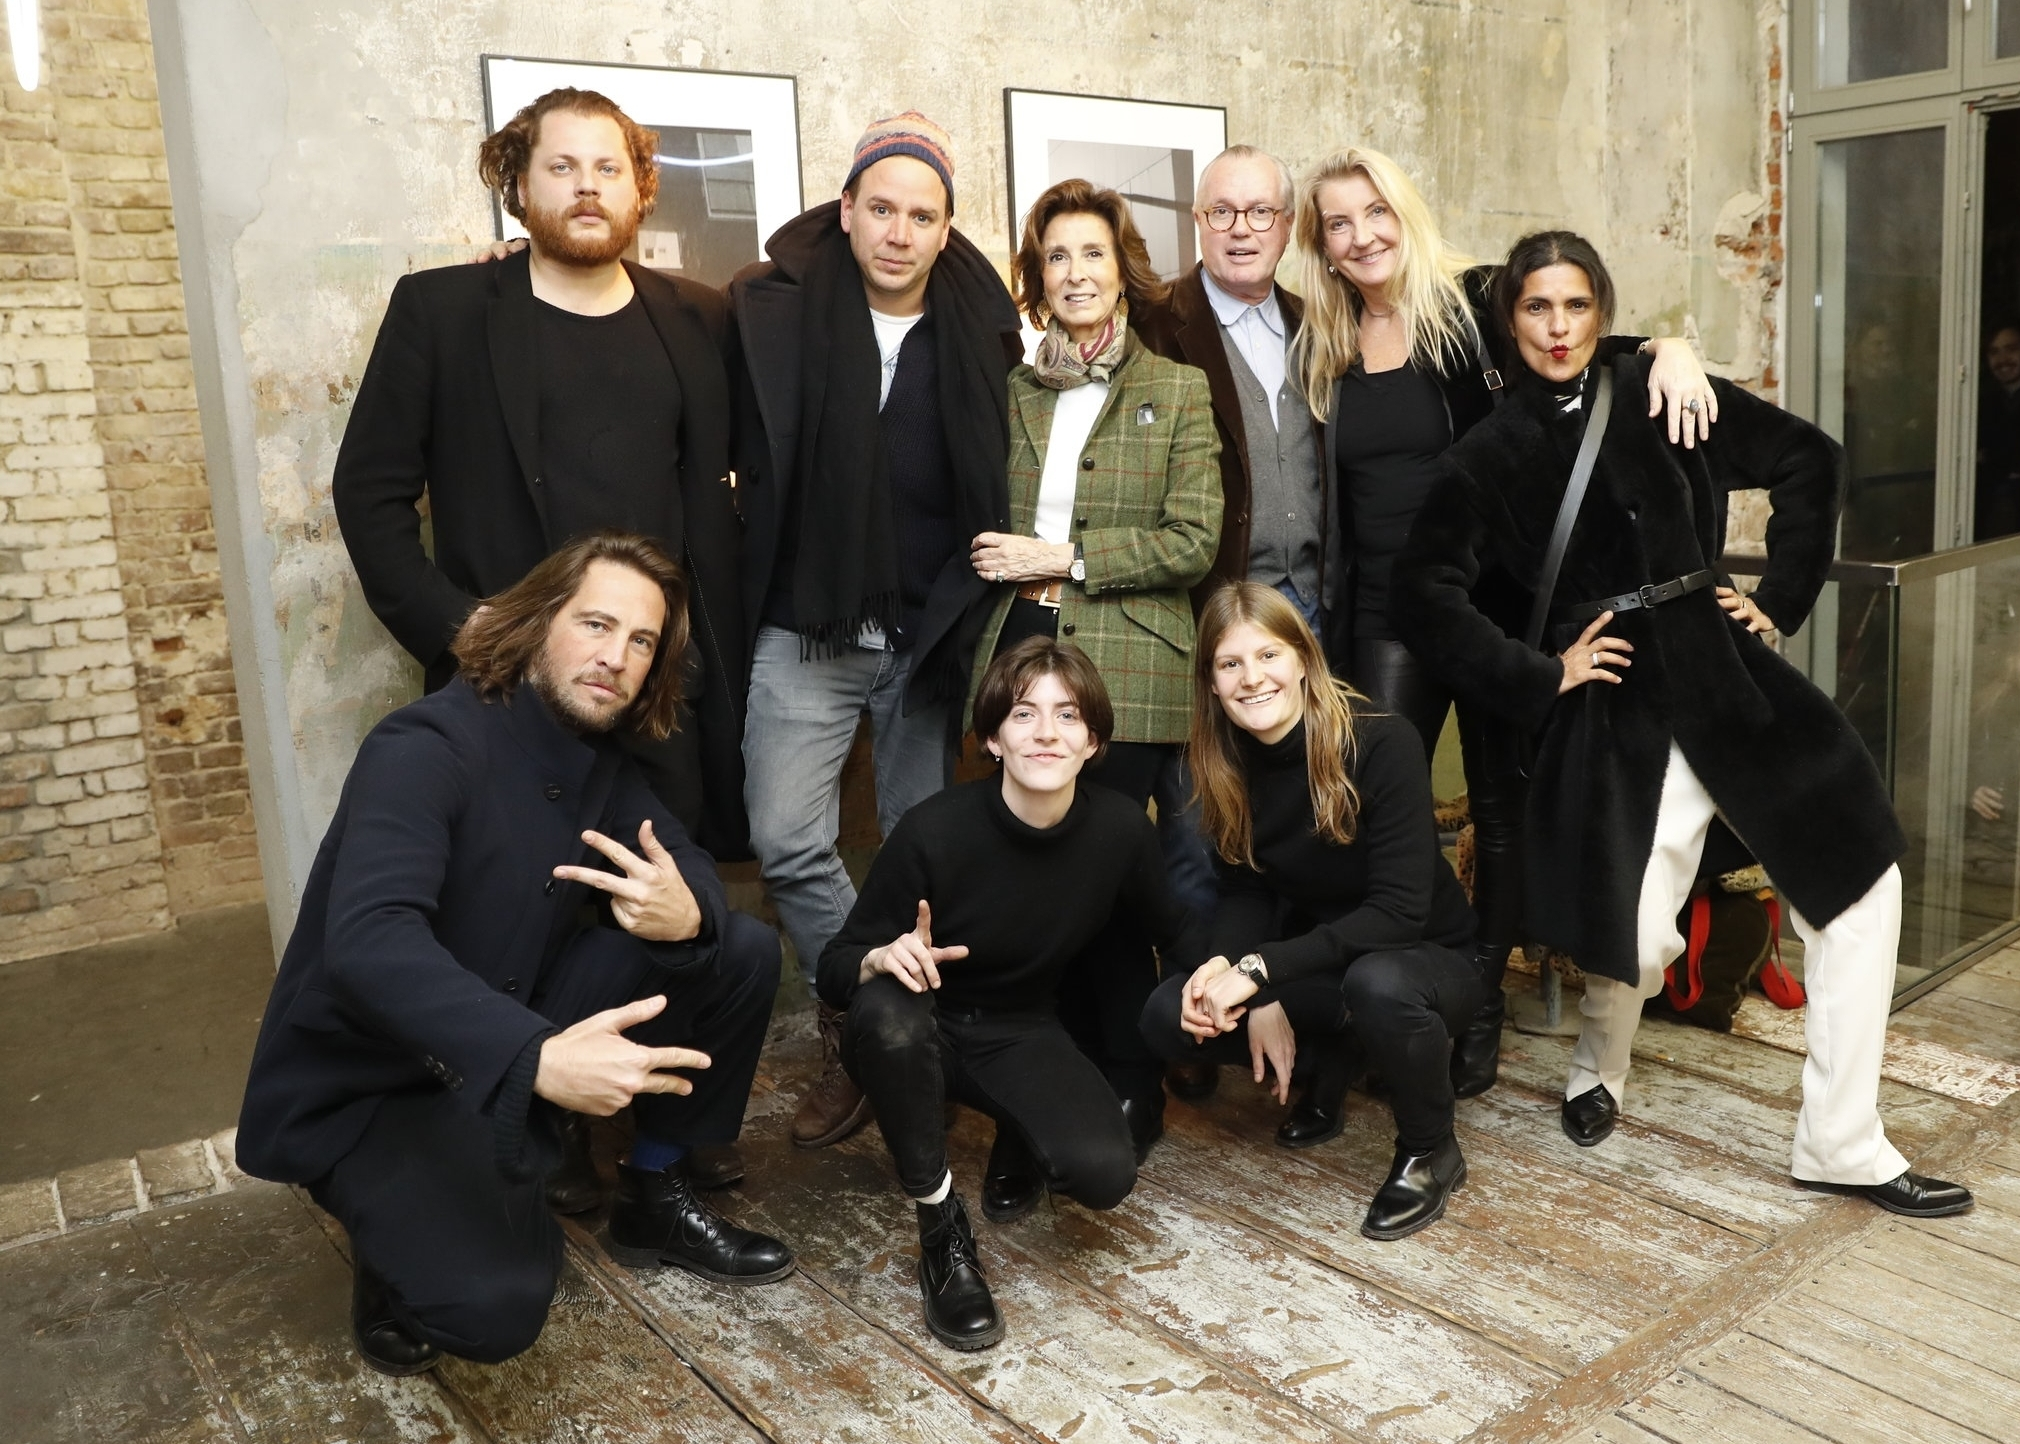 (From top left to right) Andreas Golder +  , Andreas Mühe +  , Esther Von SalisSamaden, Reimer Claussen, Colleen Rosenblat, Leyla Piedayesh +  , Johann Heahling Von Lanzenauer +  , Olivia Walsh and Mical Rosenblat attend Opening of Olivia Walsh ' [ Tectonic Acts ]   Acts of Desire and Doubt  ' at the Seven Star Gallery +,   Berlin. ©Franziska Krug